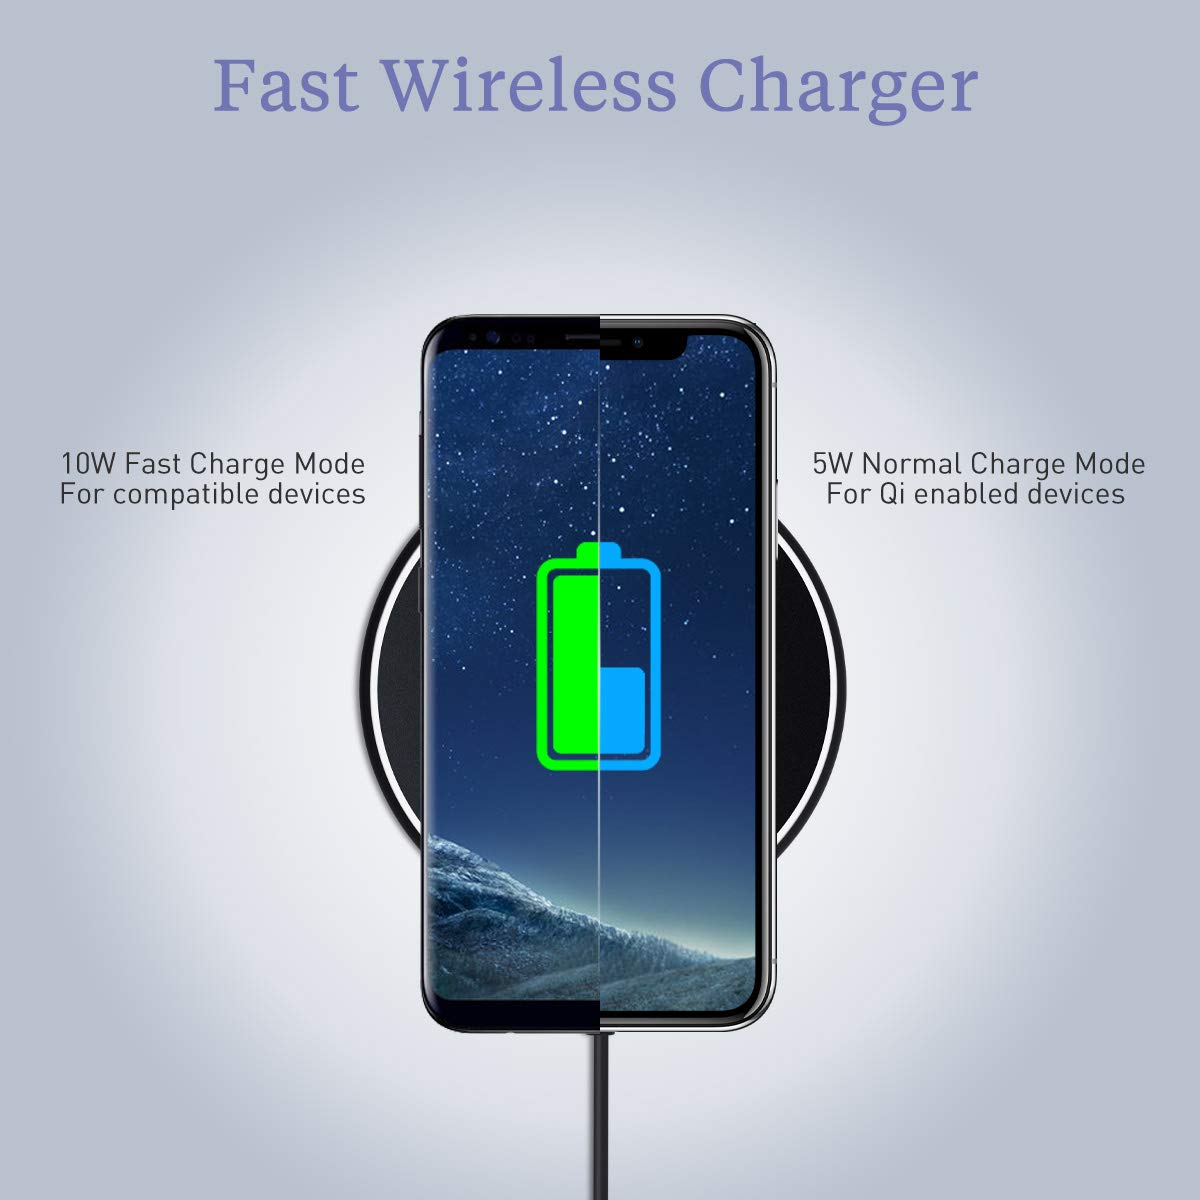 FLOUREON Wireless Charger, Qi-Enabled Charging Pad Qi 10W Fast Wireless Charger for Iphone 8/8 plus/X Samsung S6 Edge /S7/S8/Note5/Note7/Note8 and All Qi-Enabled Devices